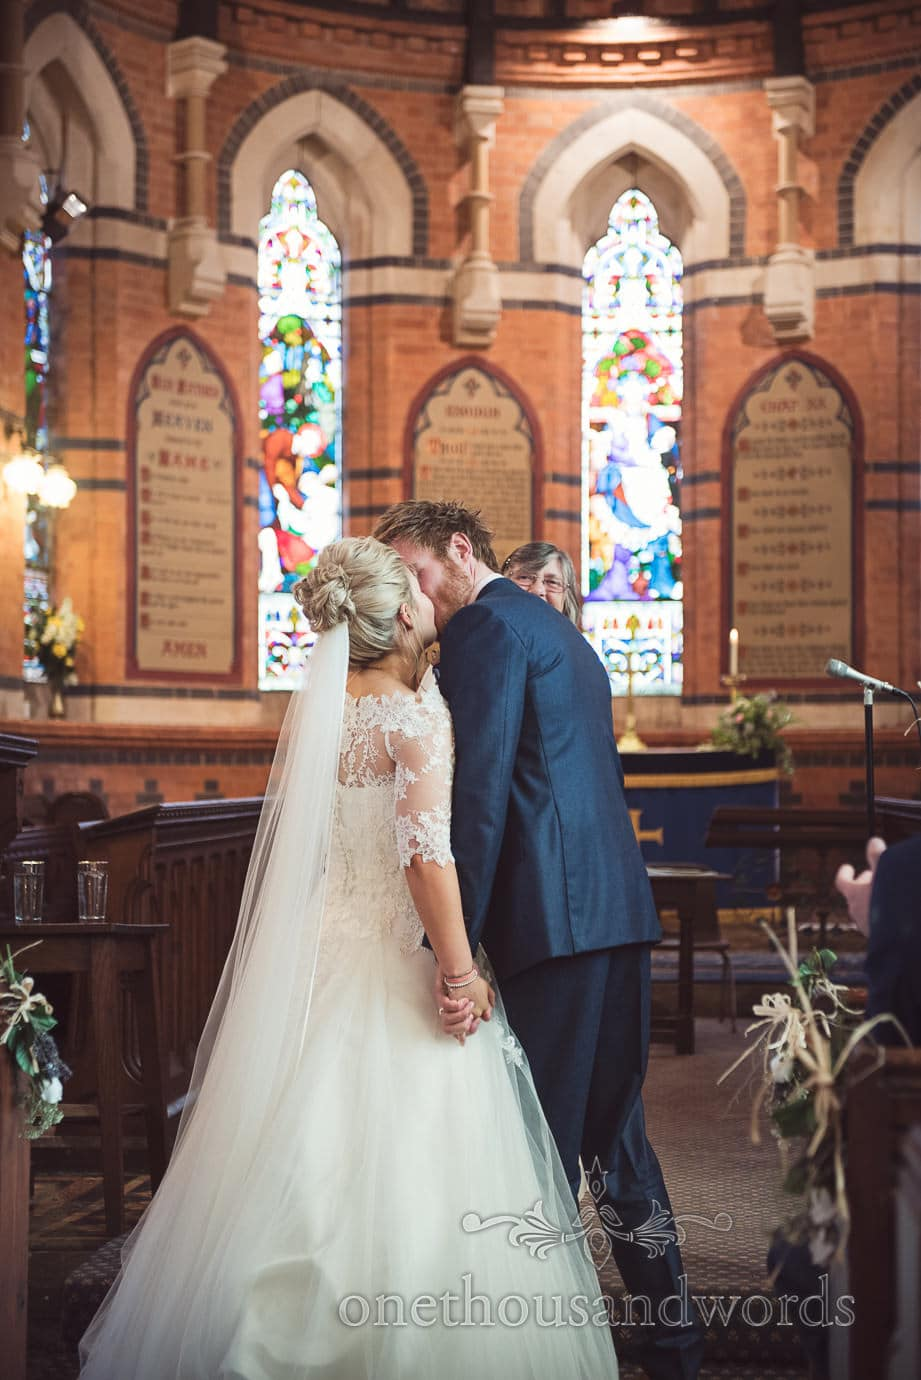 First kiss at red brick church wedding ceremony in Tur Langton Leicestershire